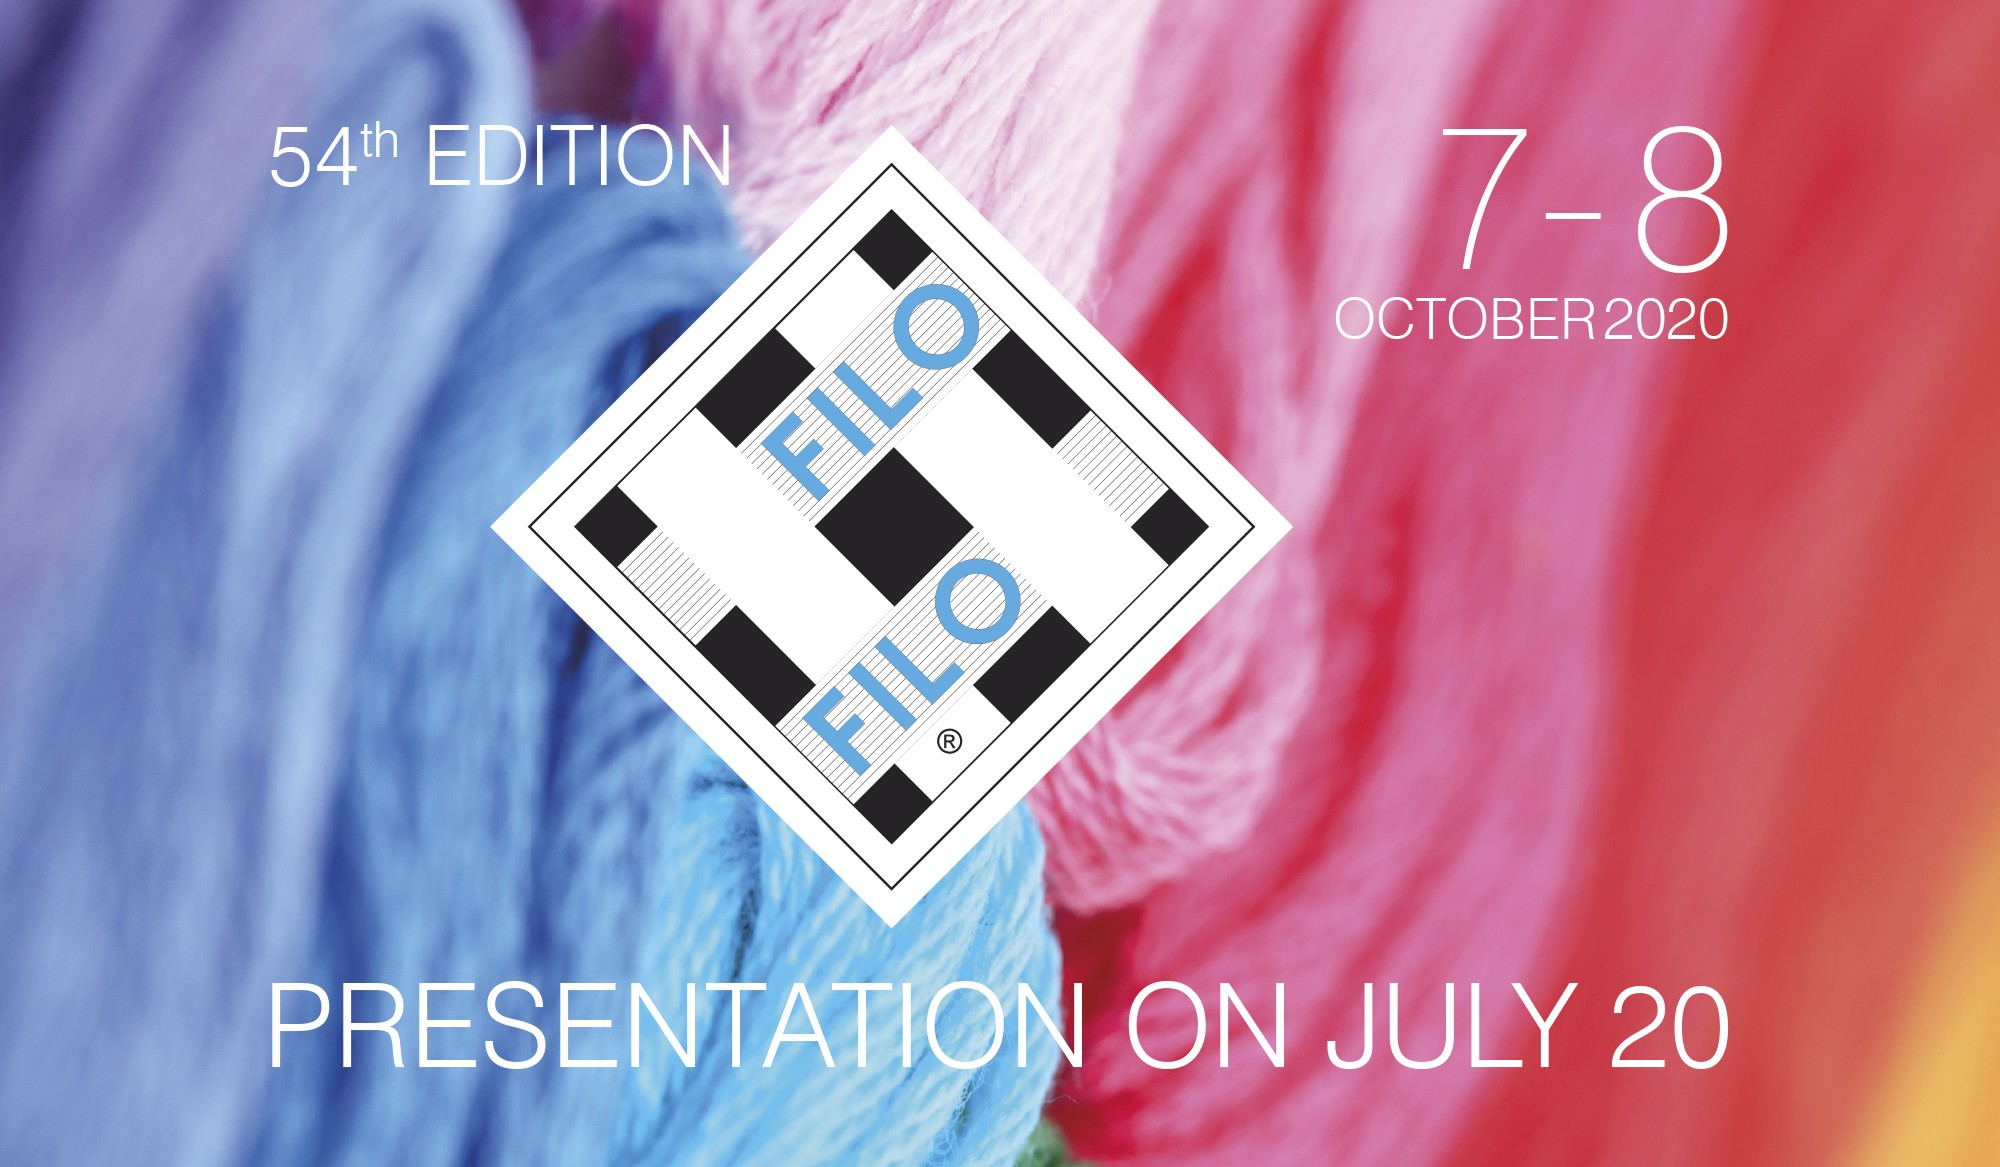 July 20: Presentation Of The 54th Edition Of Filo